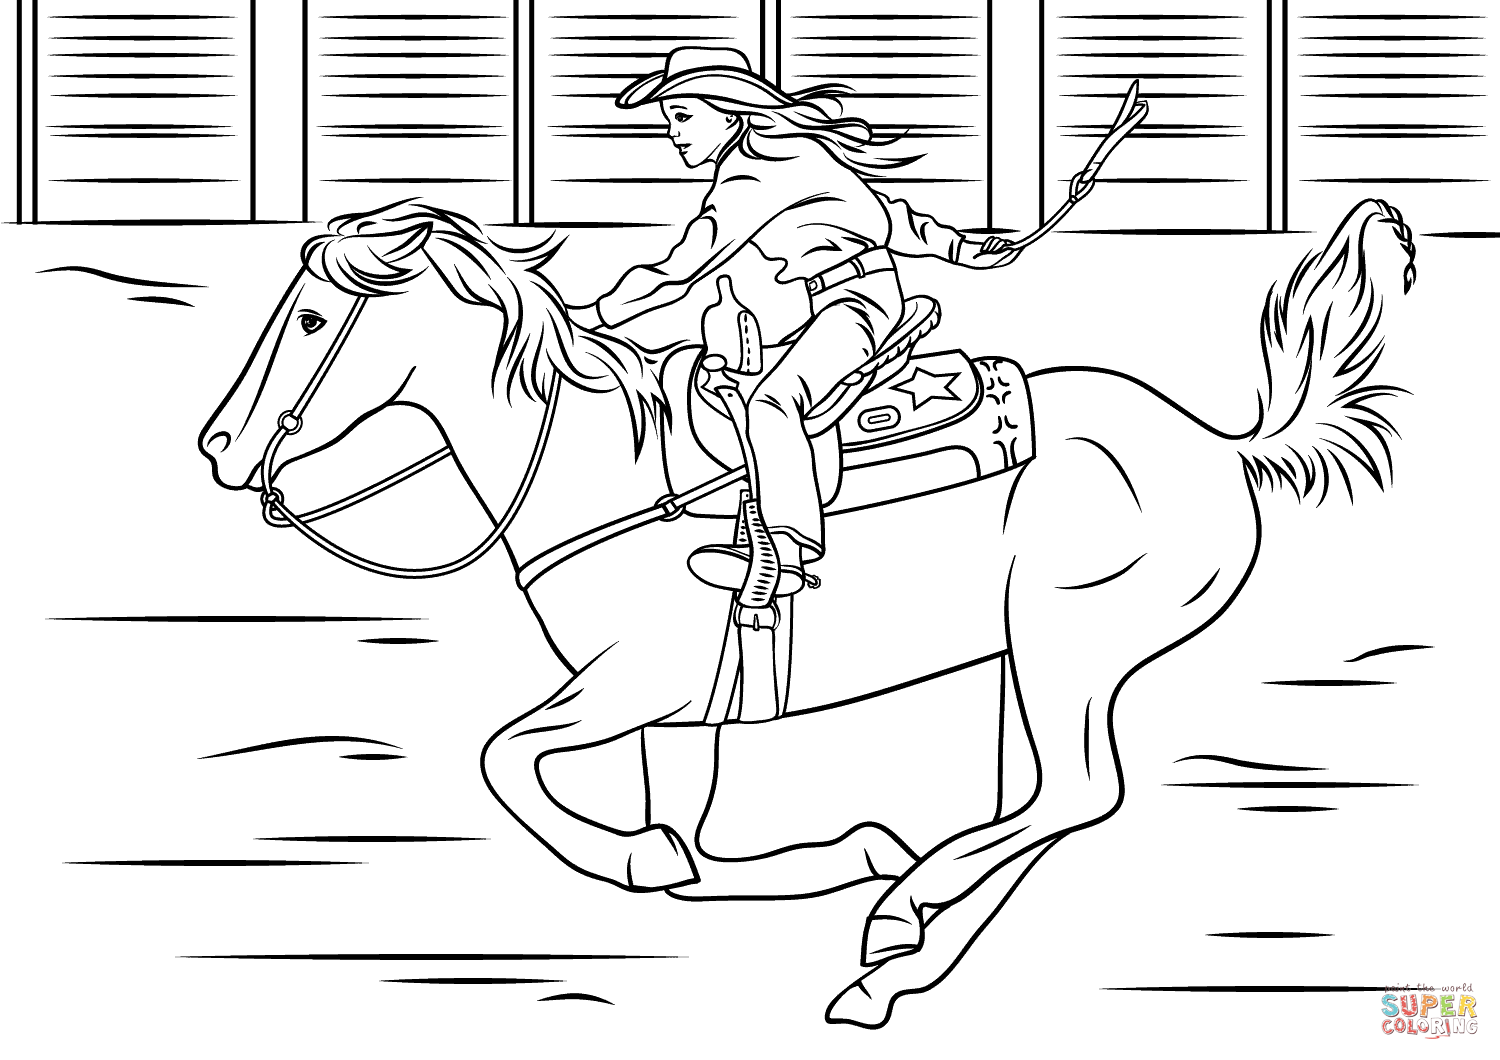 Cowgirl Riding Horse Coloring Page